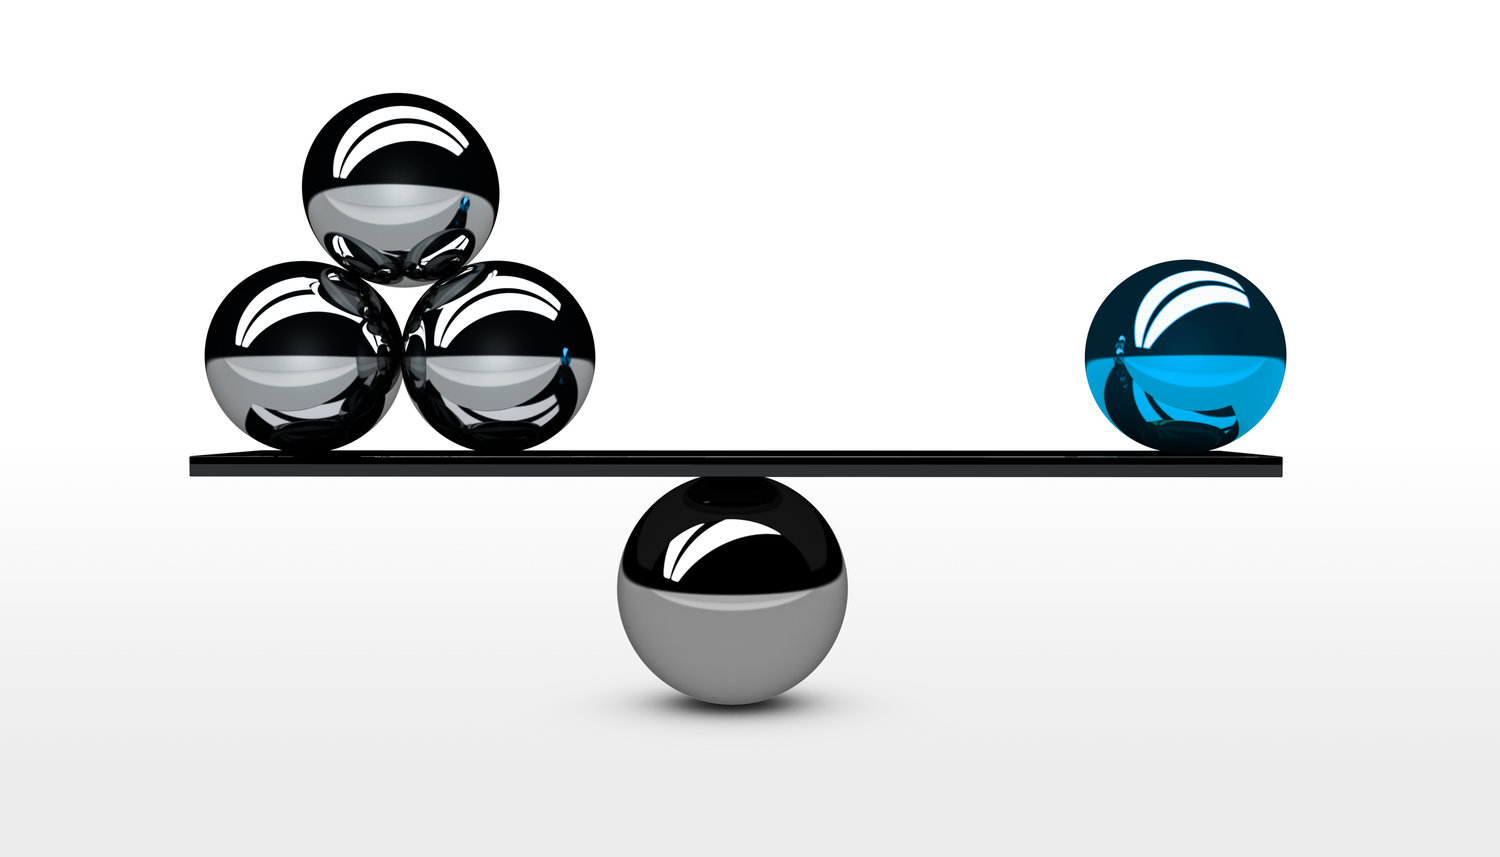 Whats The Purpose Of Balancing Or Monitoring Your Checking Account >> Nordic Institute For Interoperability Solutions Balancing The Load